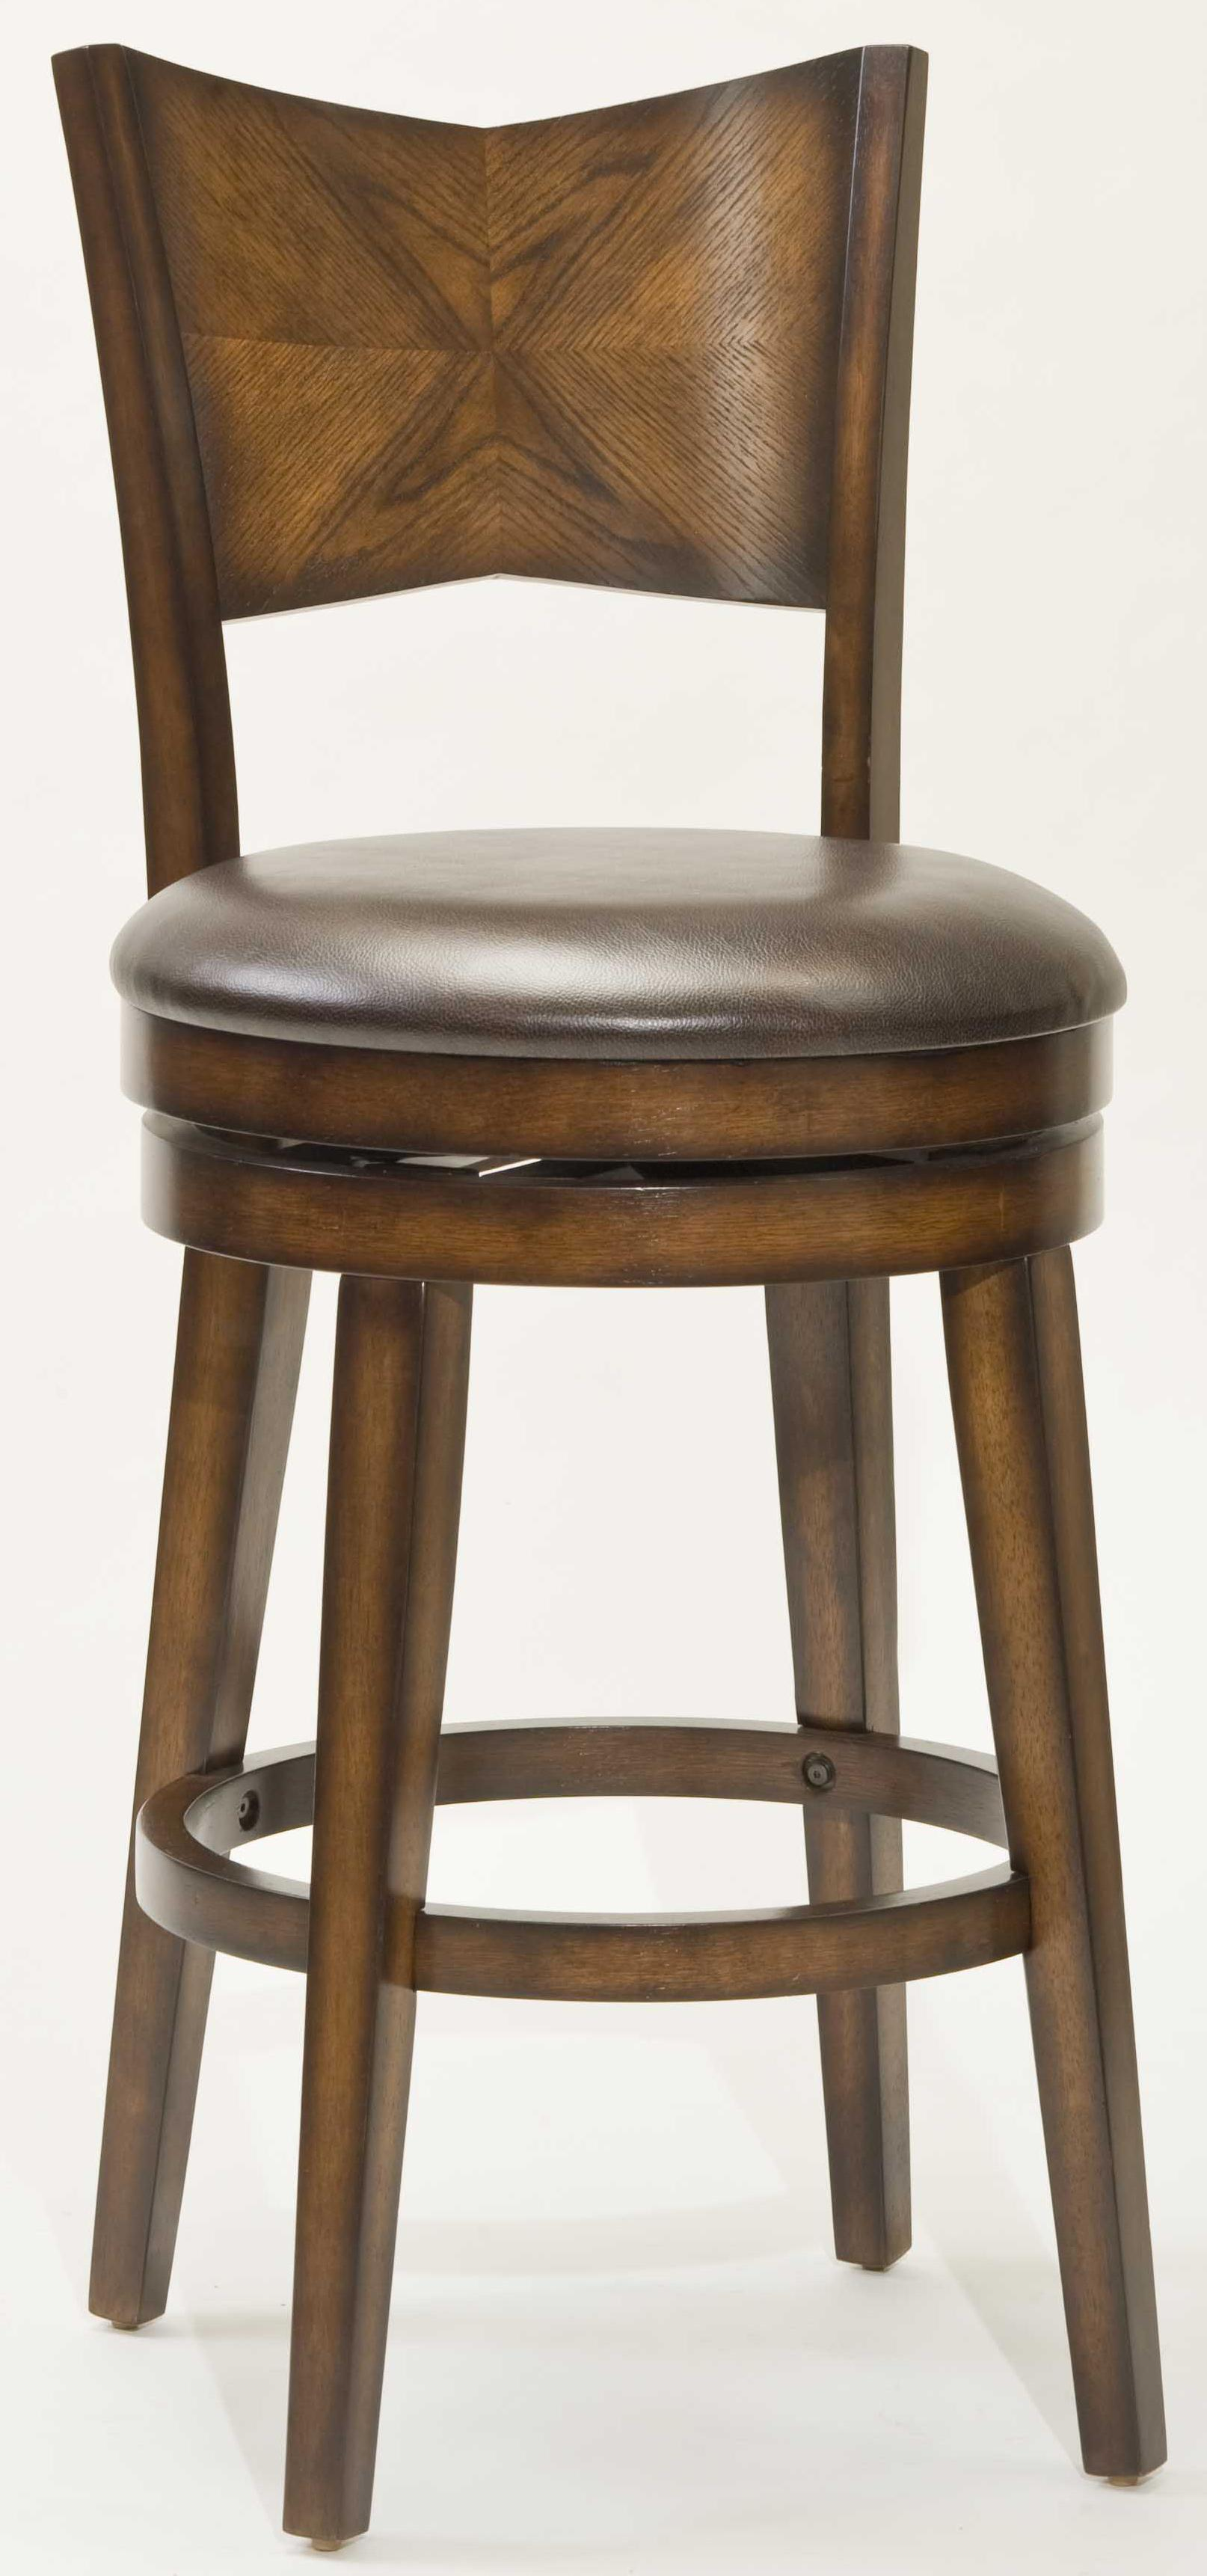 """Wood Stools 26.5"""" Counter Height Jenkin Swivel Bar Stool by Hillsdale at Northeast Factory Direct"""